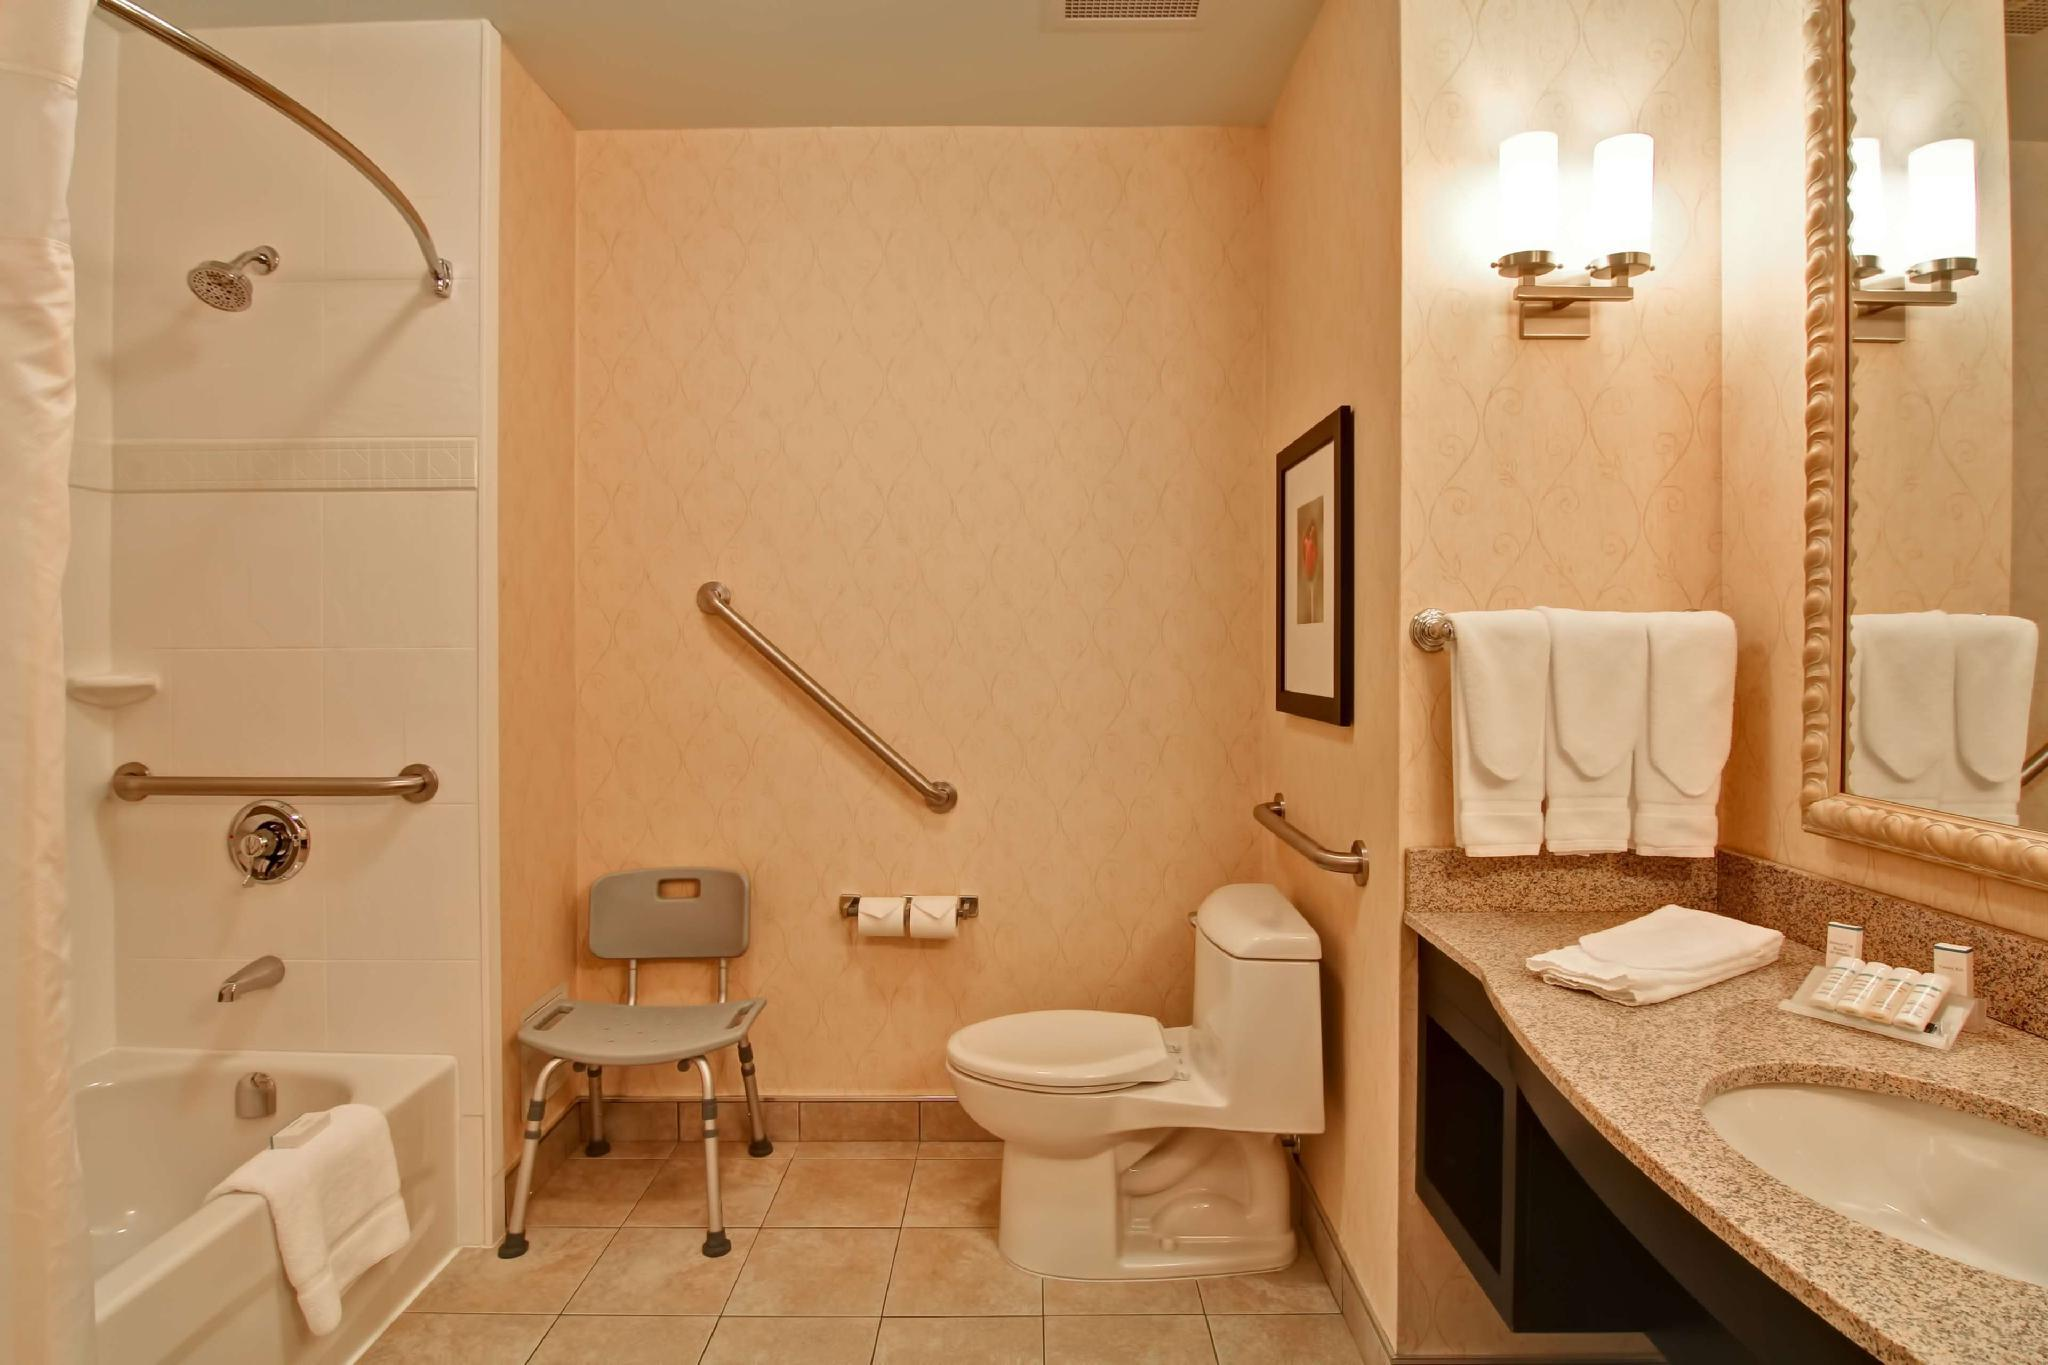 2 Queen Accessible Room with Bath Tub